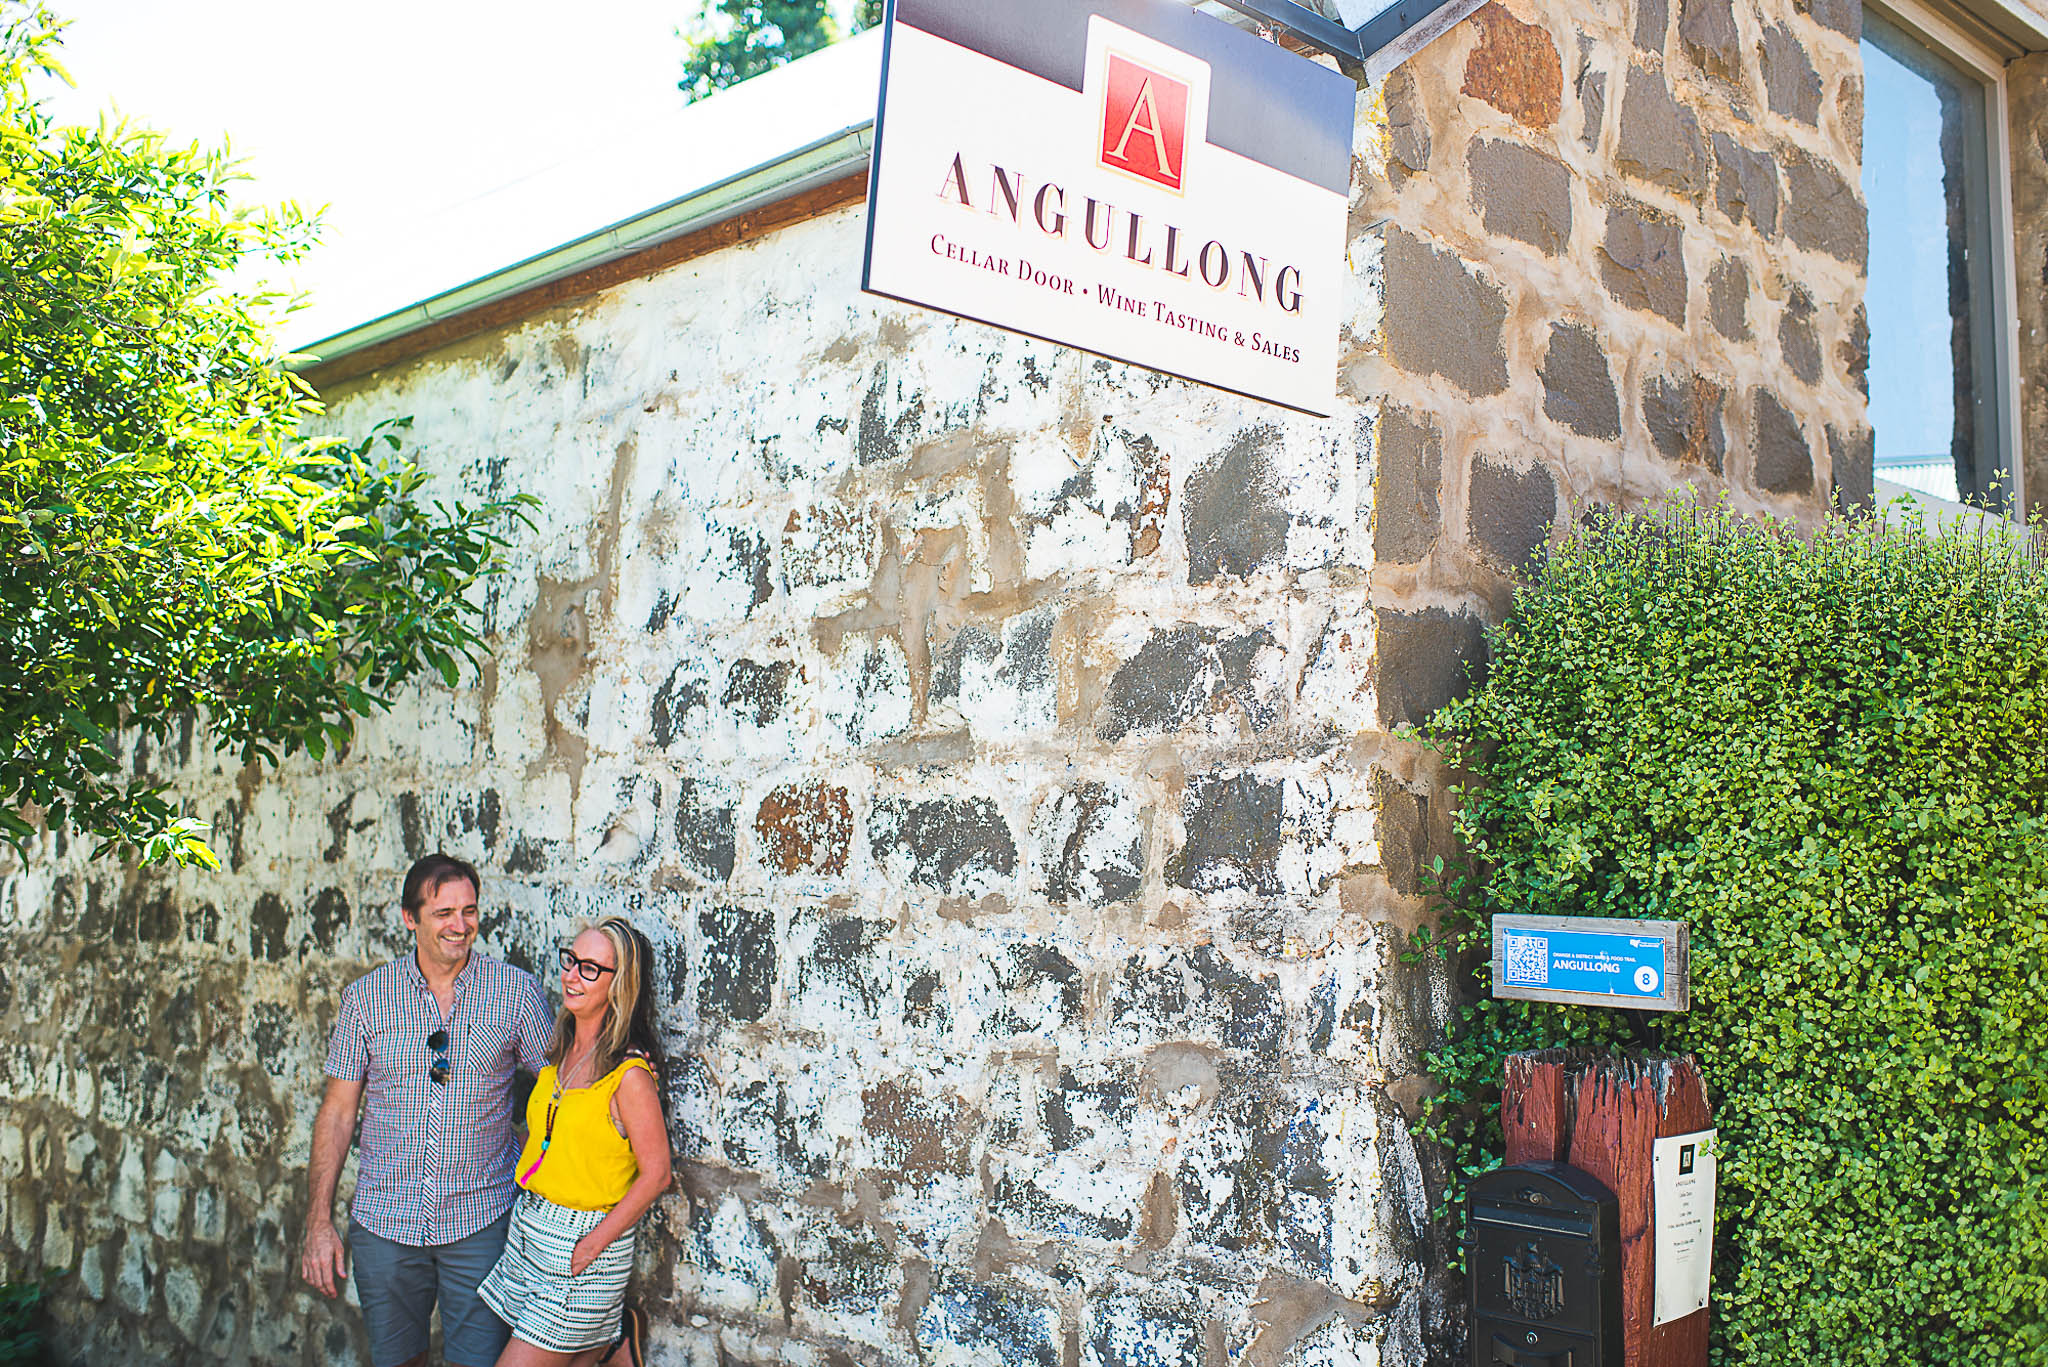 The Angullong bluestone cellar door was once the stables belonging to the next door pub